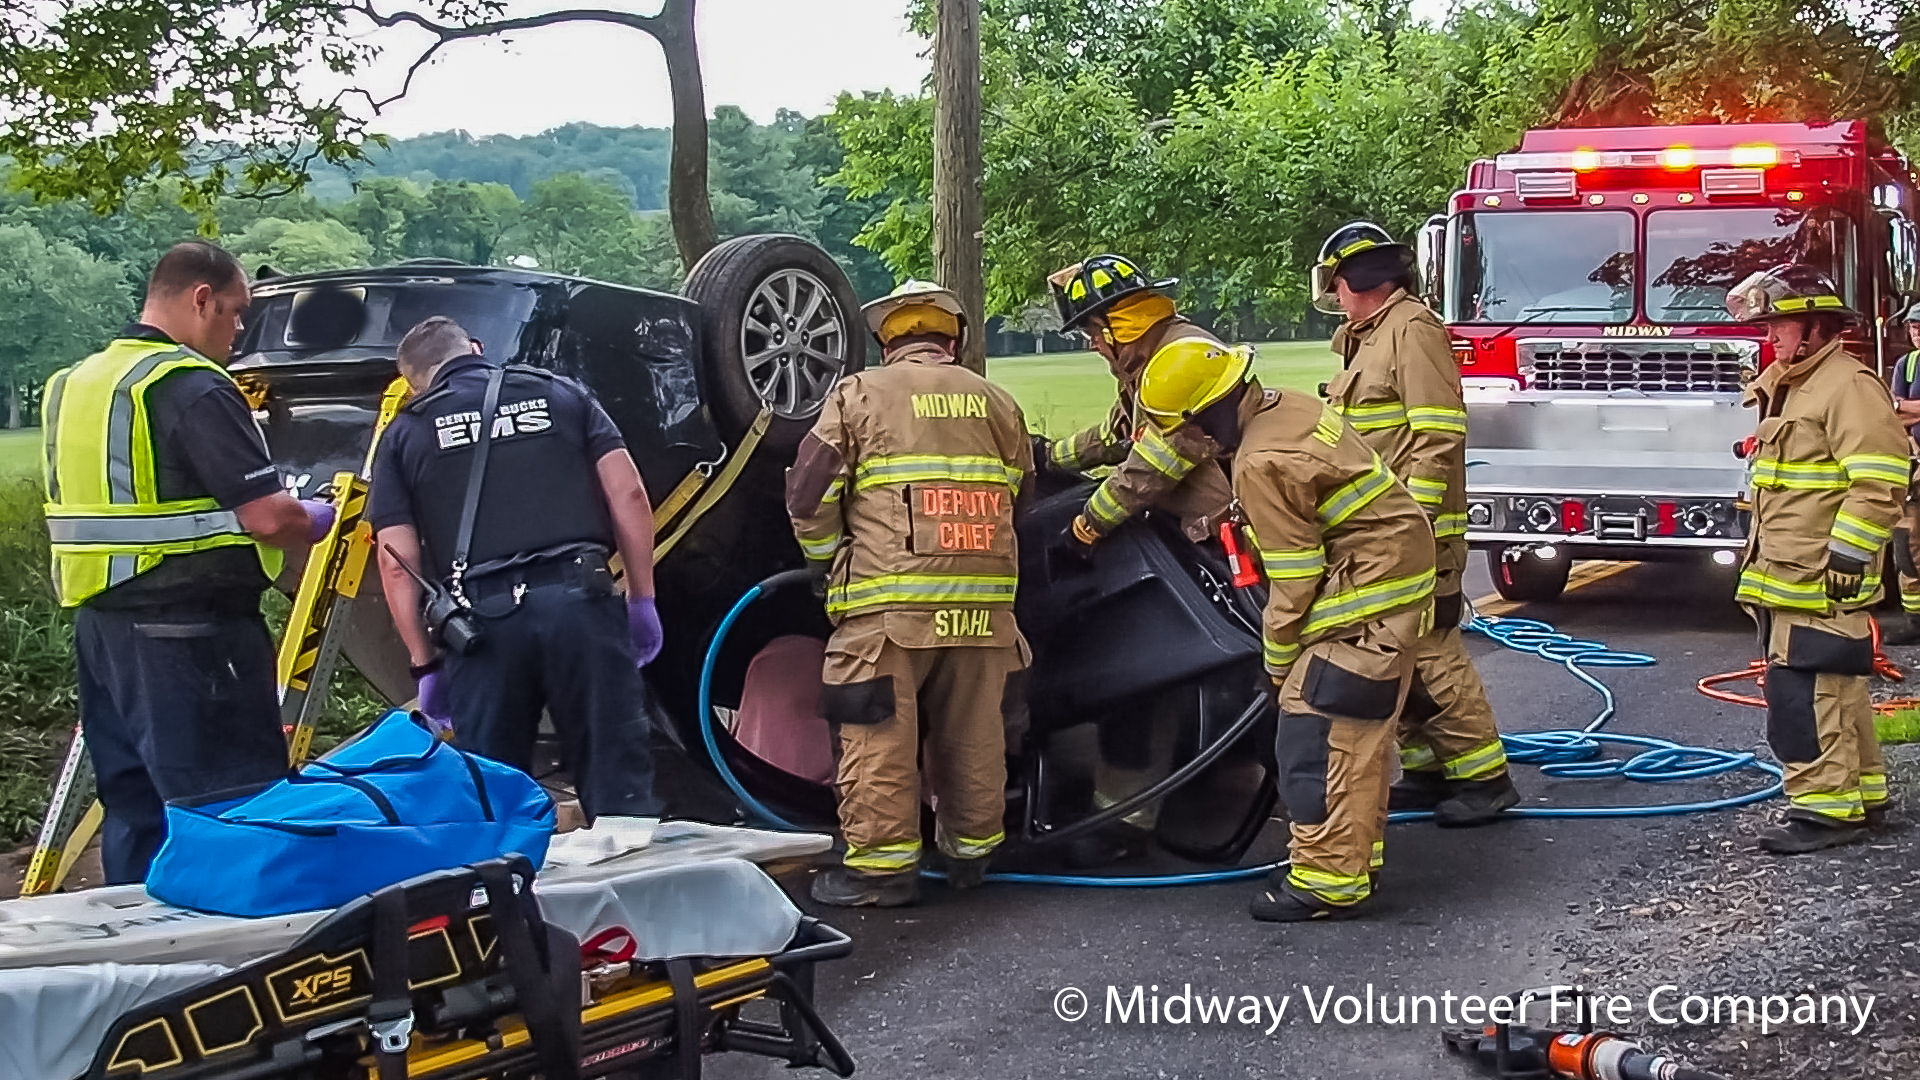 2019.07.03 - at 6:26AM Midway's Rescue 5 and Central Bucks EMS responded to an auto extraction on Green Hill Road, near Mechanicsville Road in Solebury Township. It took crews less than 6 minutes create an opening to remove the single occupant, who was then transported to an area Trauma Center. No additional information on driver's condition or cause is available at this time.